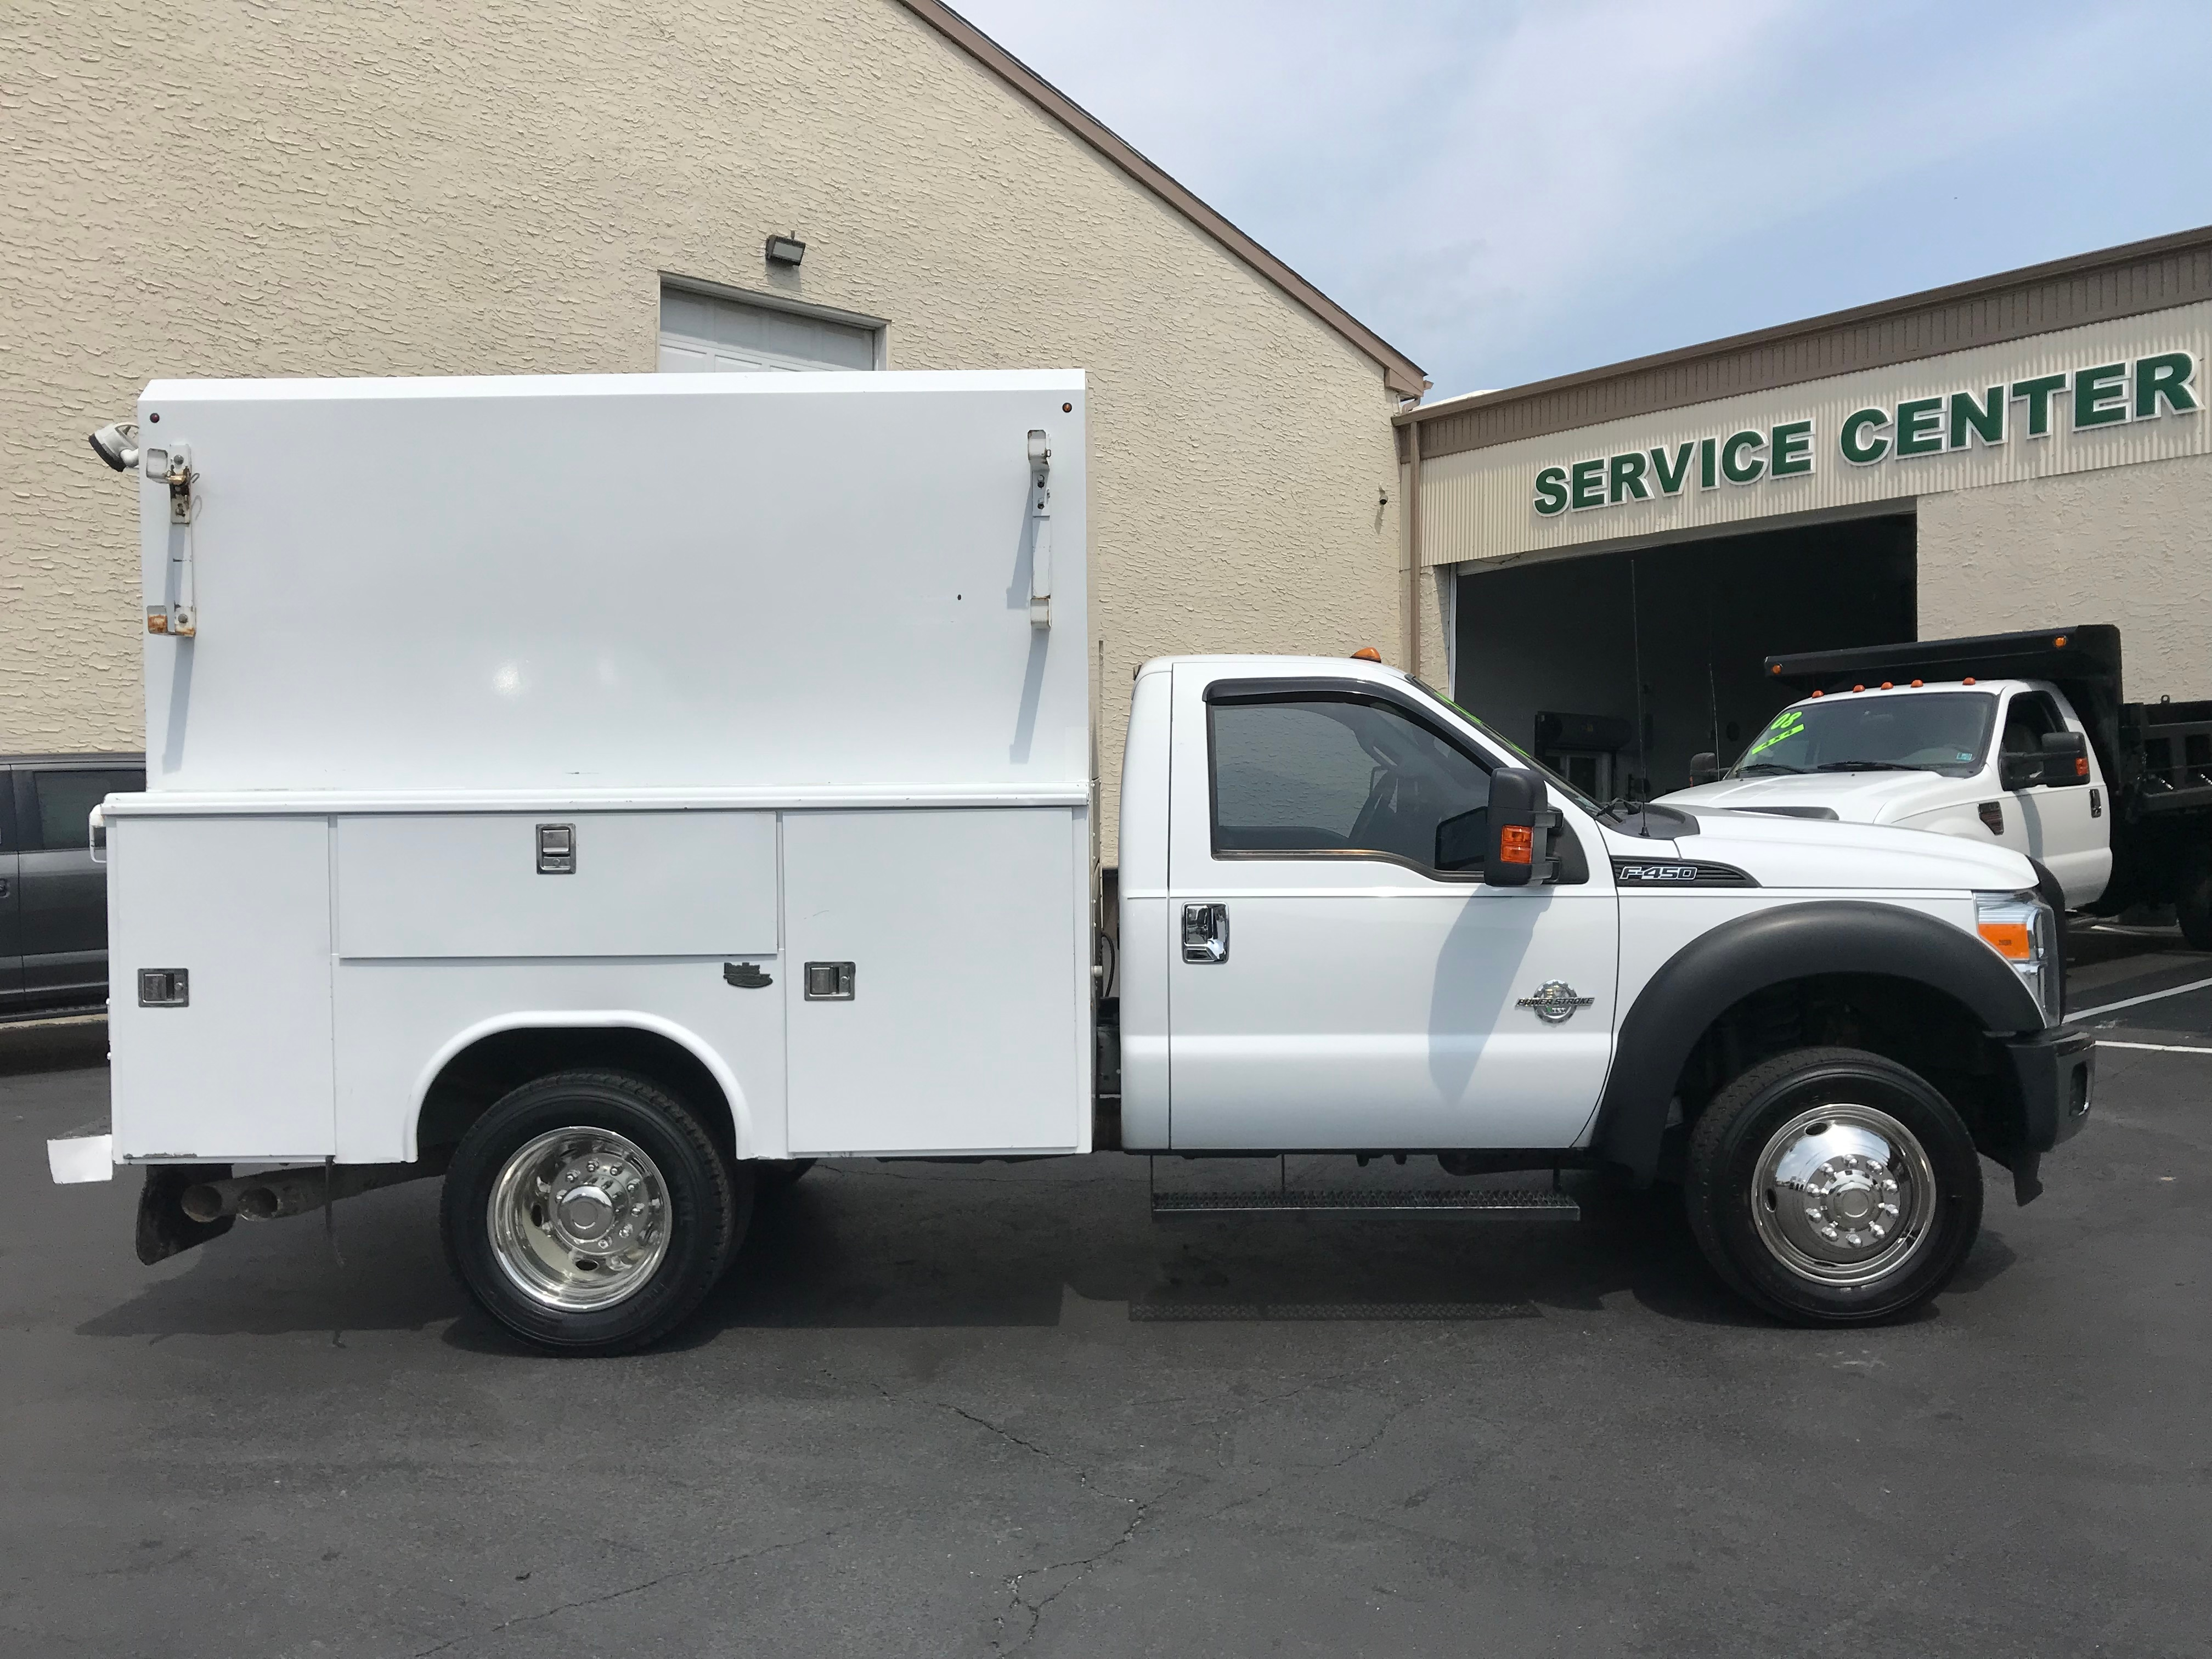 USED 2012 FORD F450 XL SERVICE - UTILITY TRUCK #591930